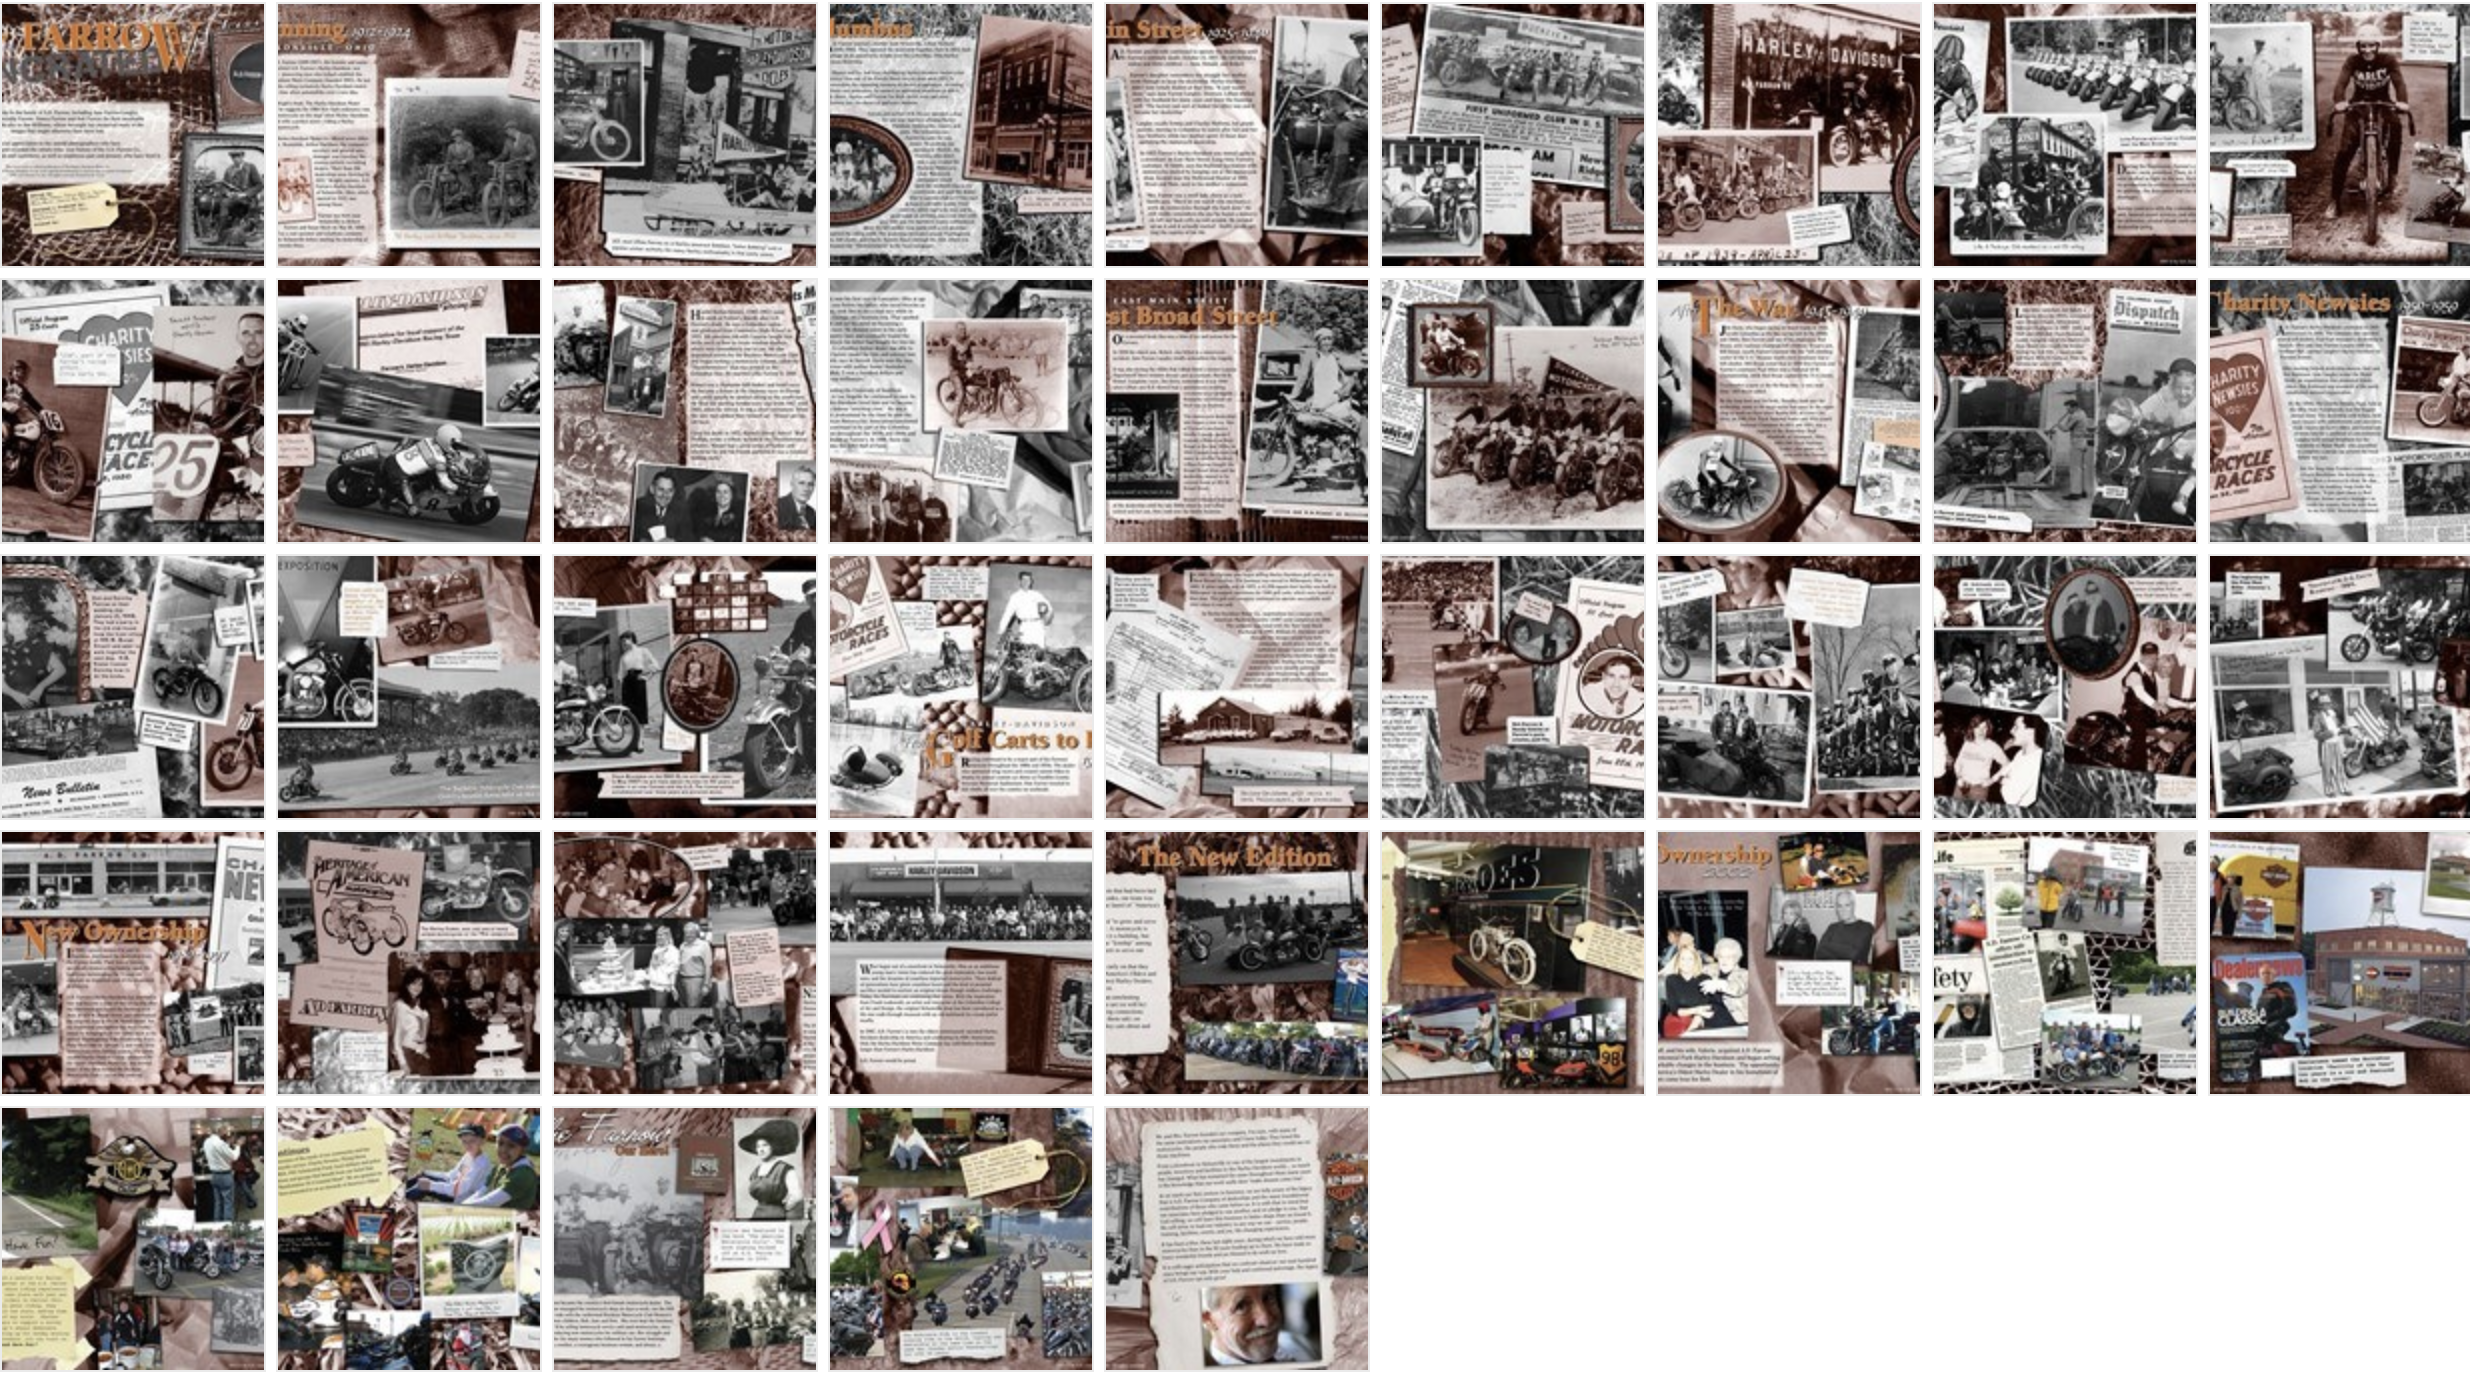 Pages of history at A.D. Farrow Co Harley-Davidson®